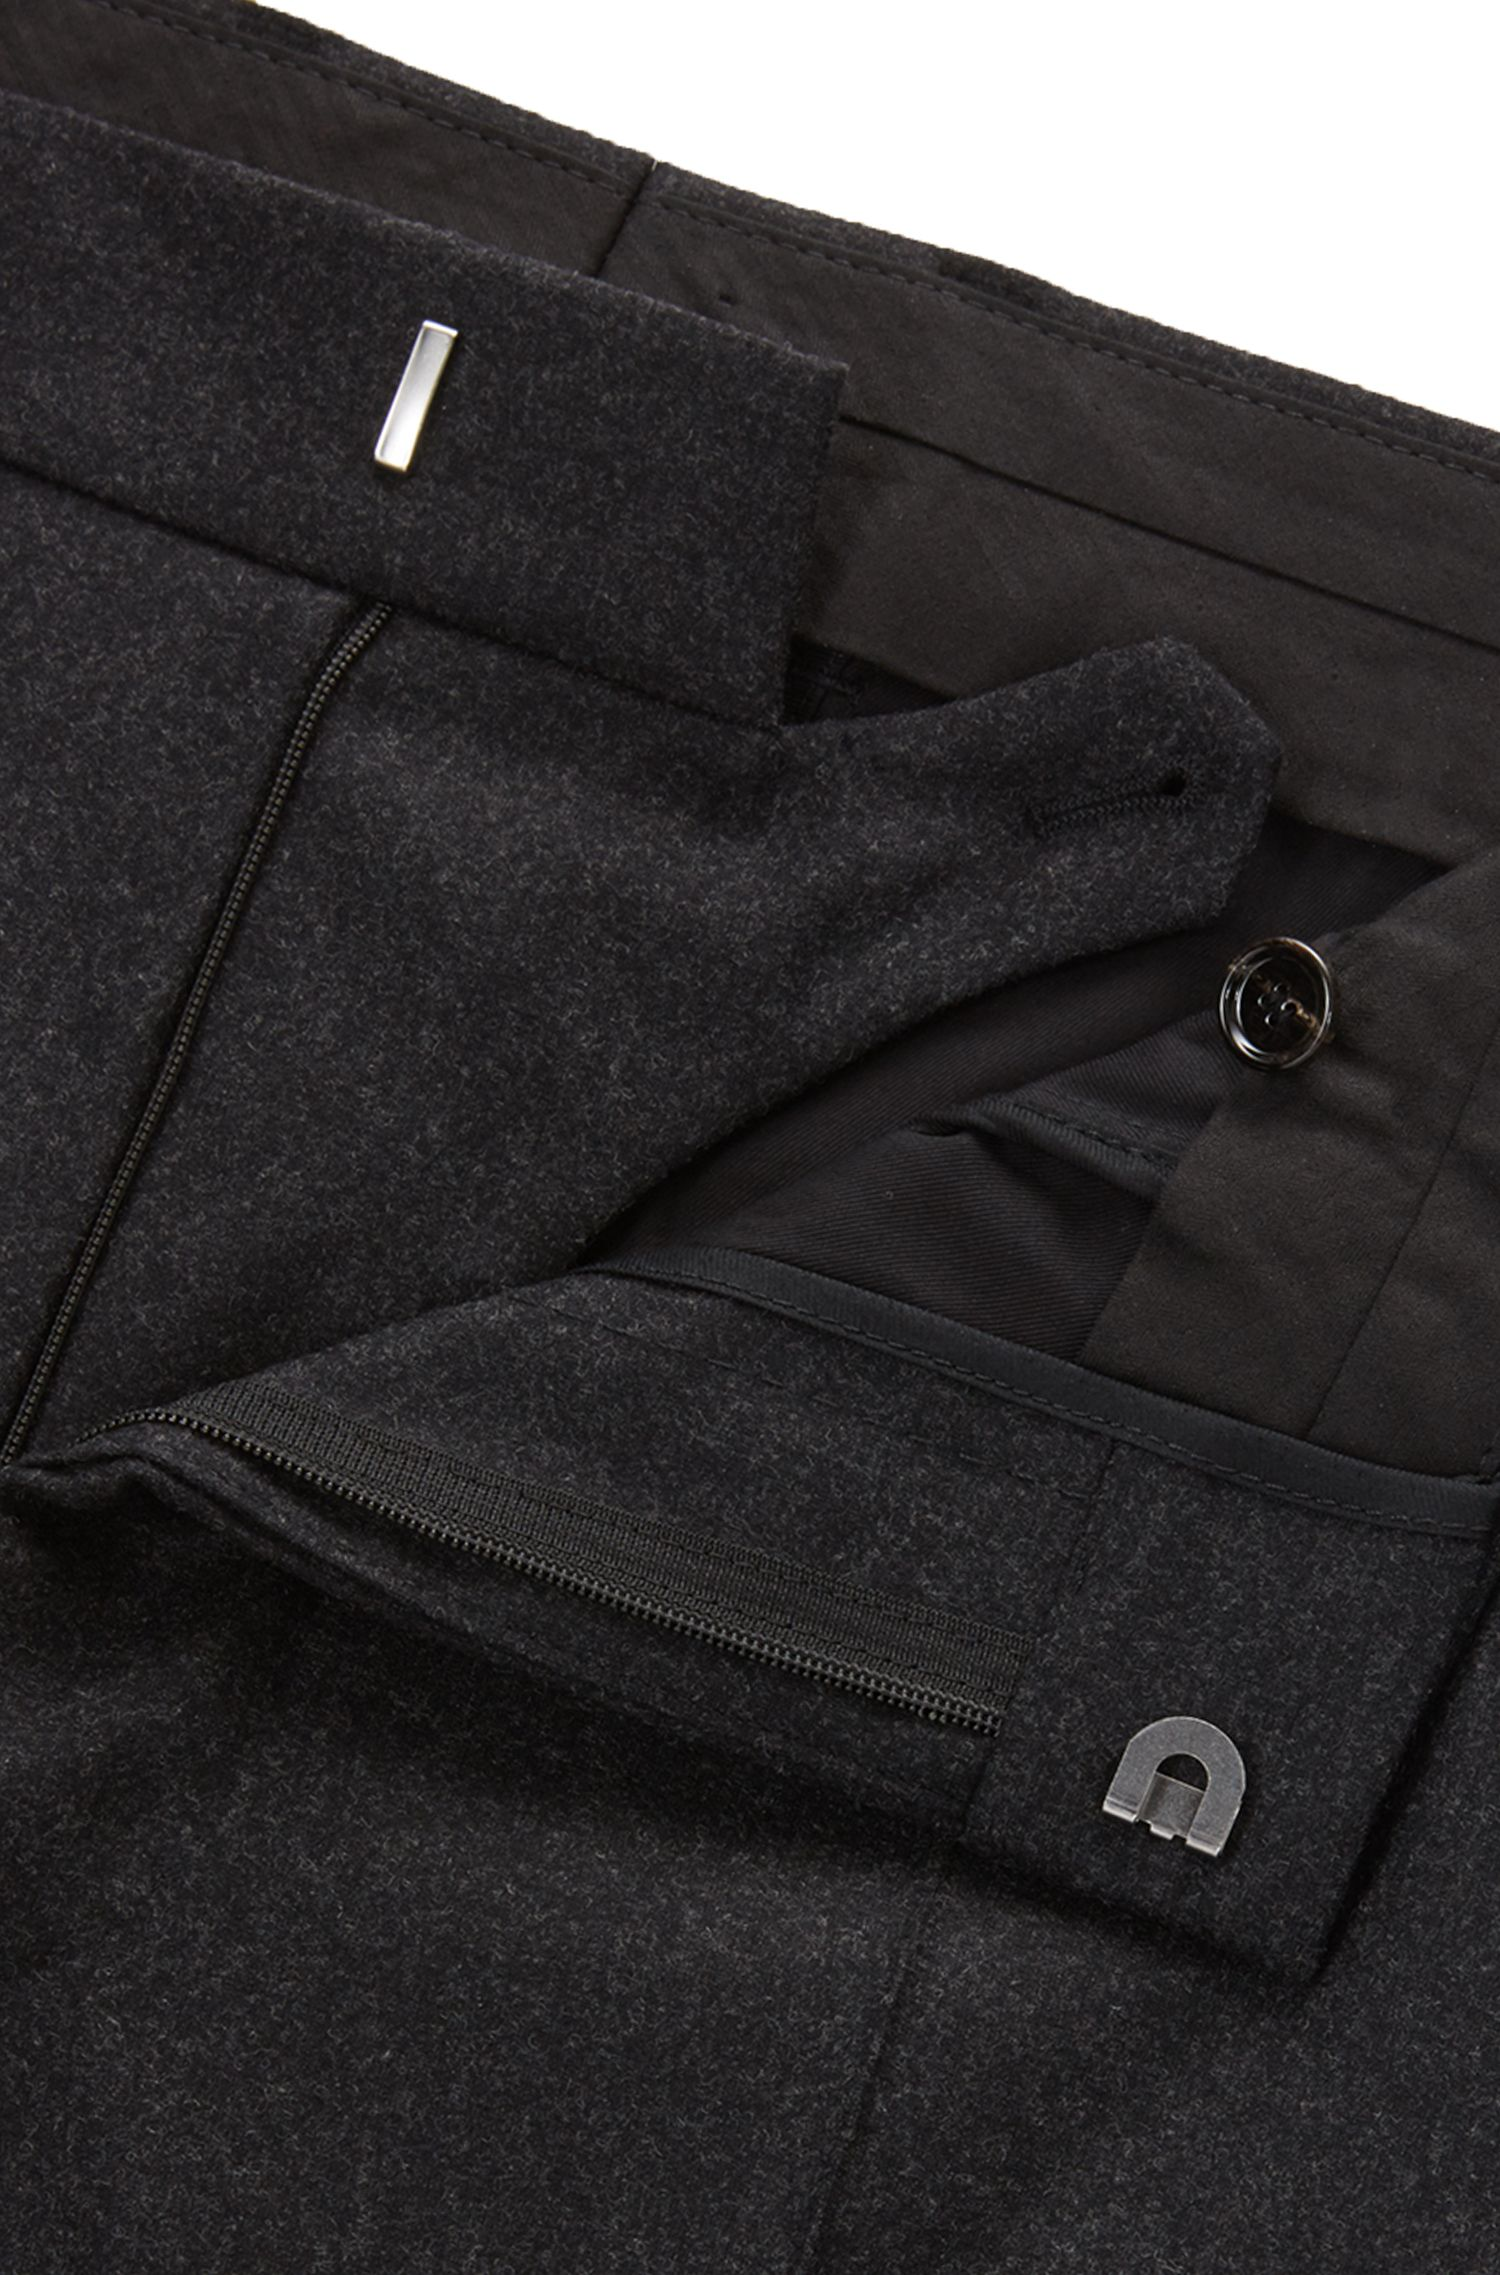 Stretch Virgin Wool-Cashmere Dress Pant | Point